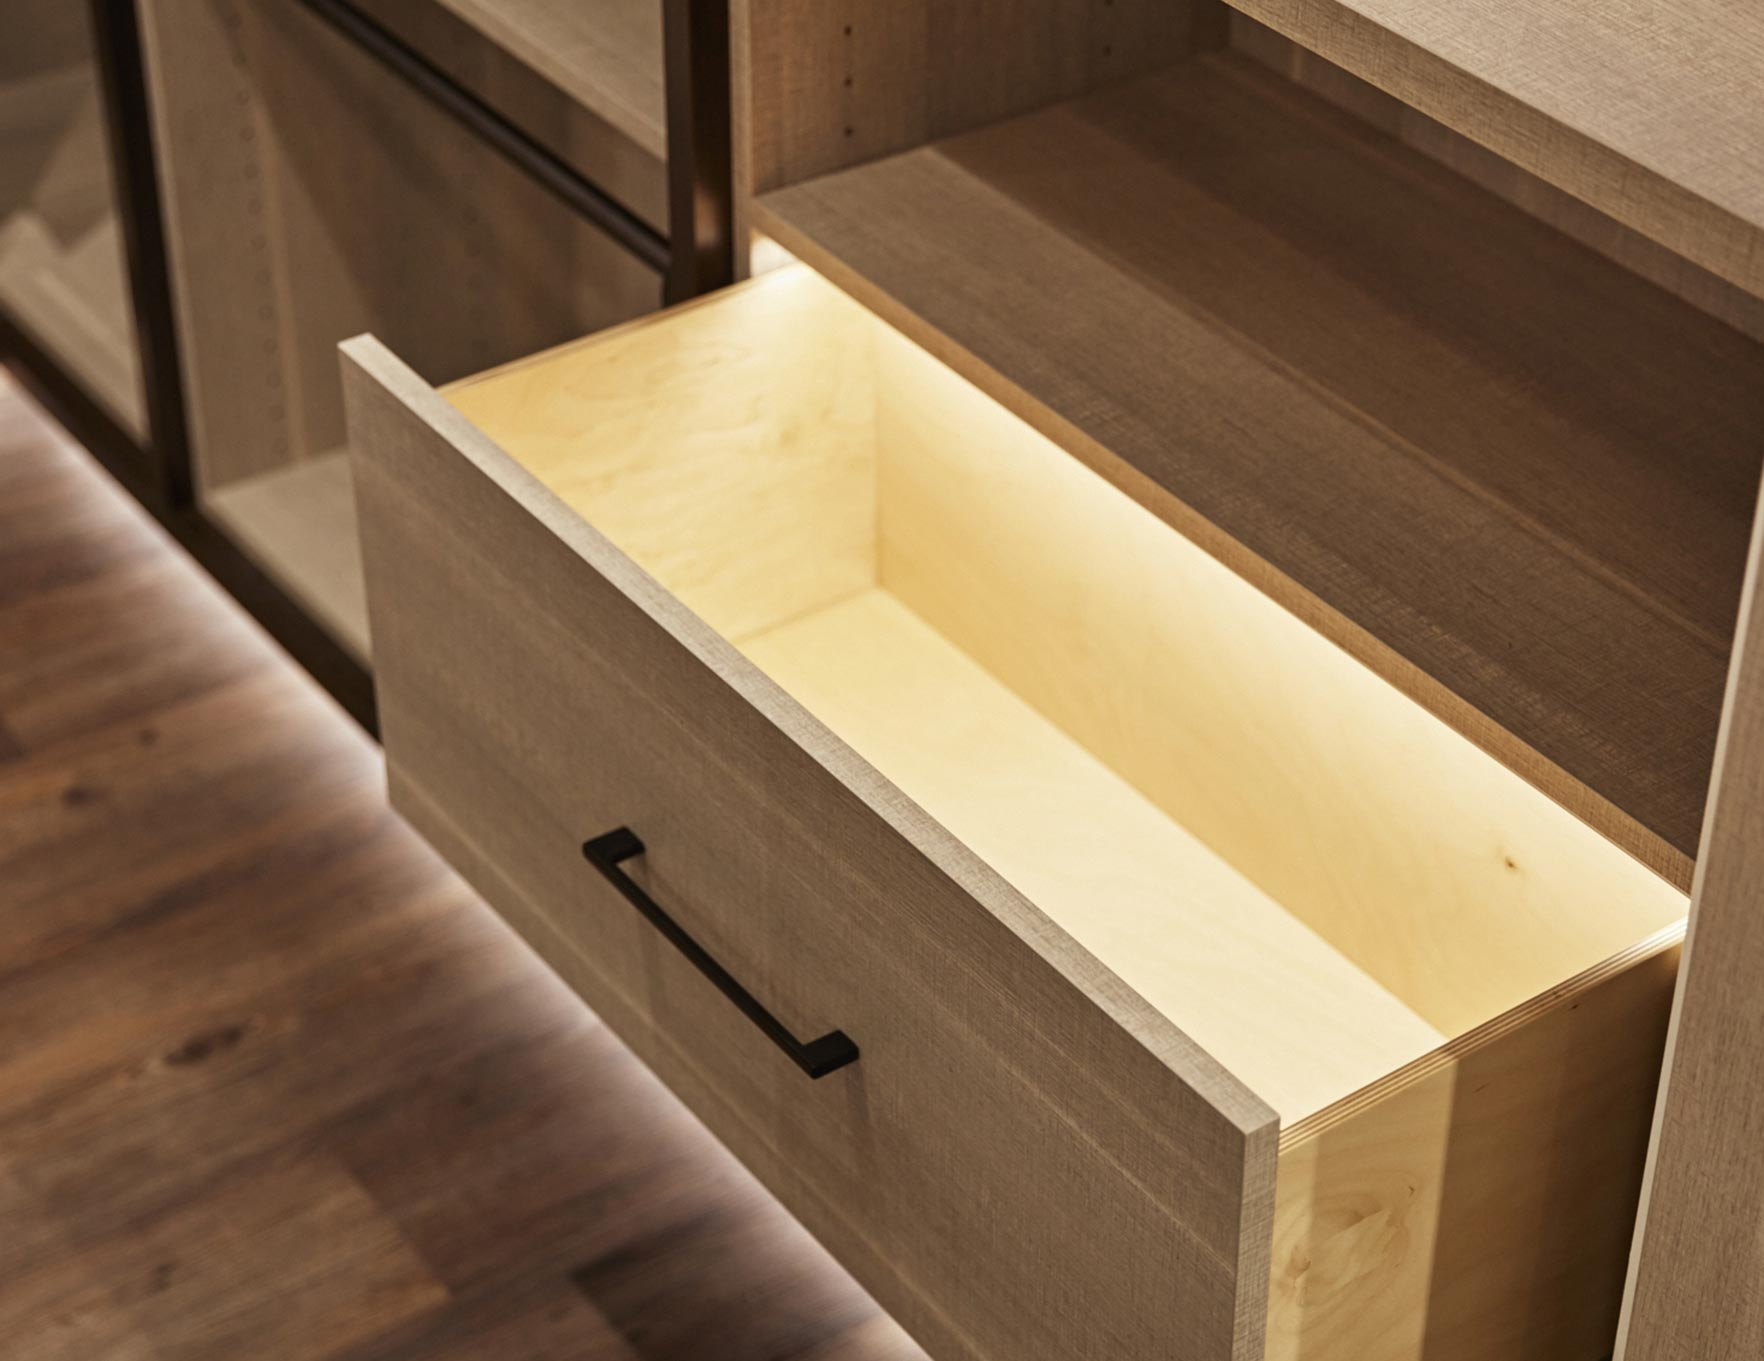 California Closets Boston - Drawer Lighting